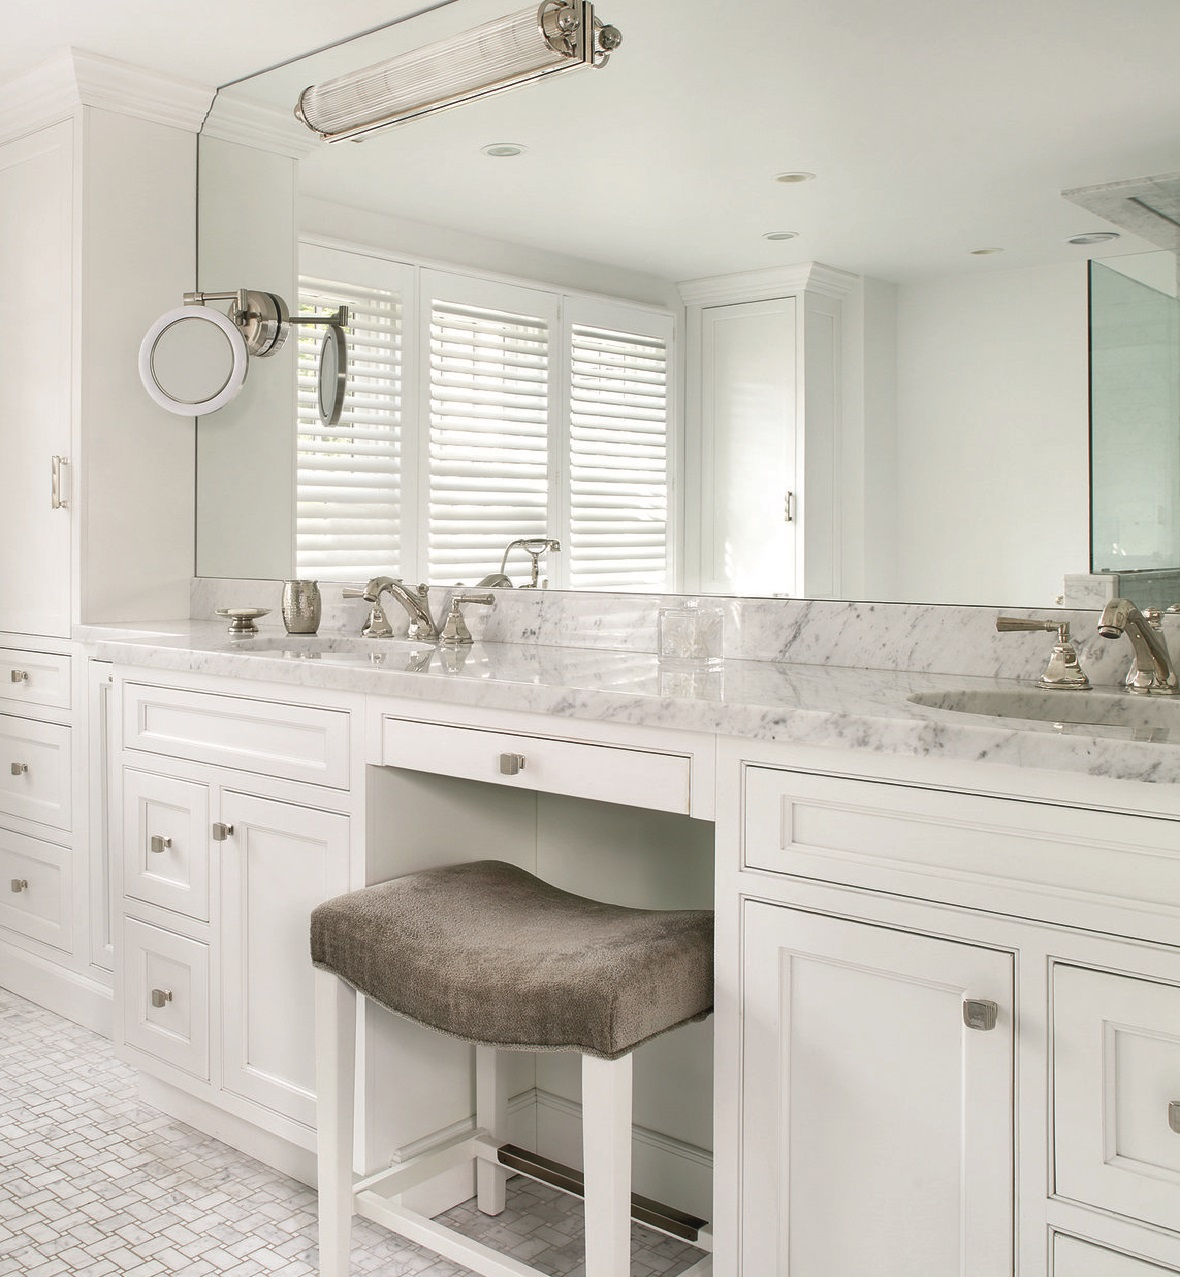 Is DIY Or Professional Bathroom Remodeling Right For You